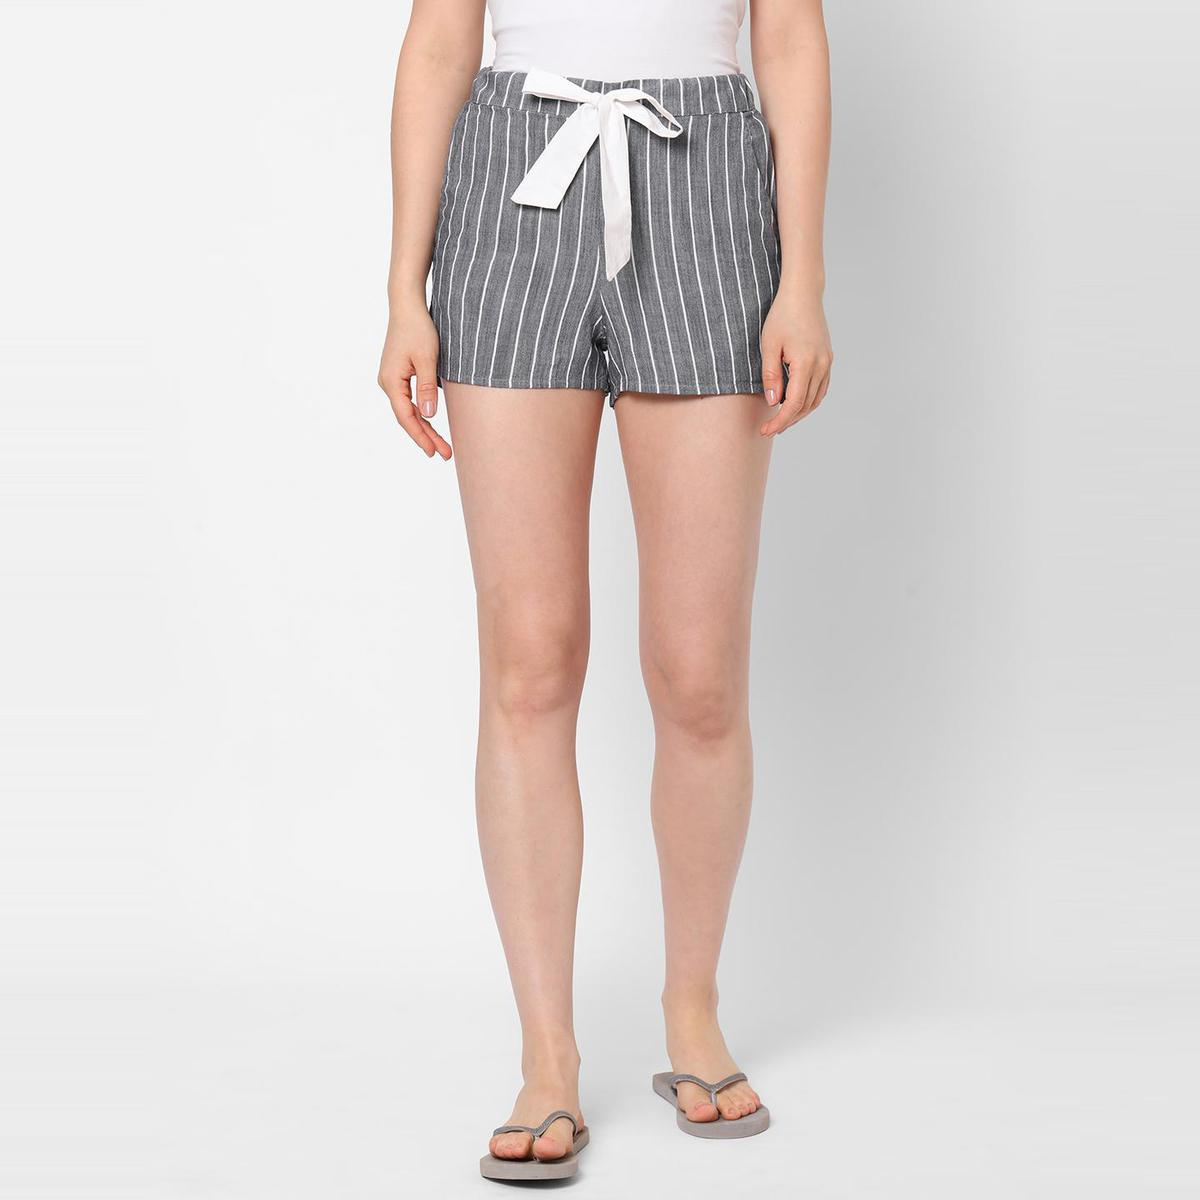 Mystere Paris - Charcoal Grey White Colored Classic Striped Cotton Lounge Shorts